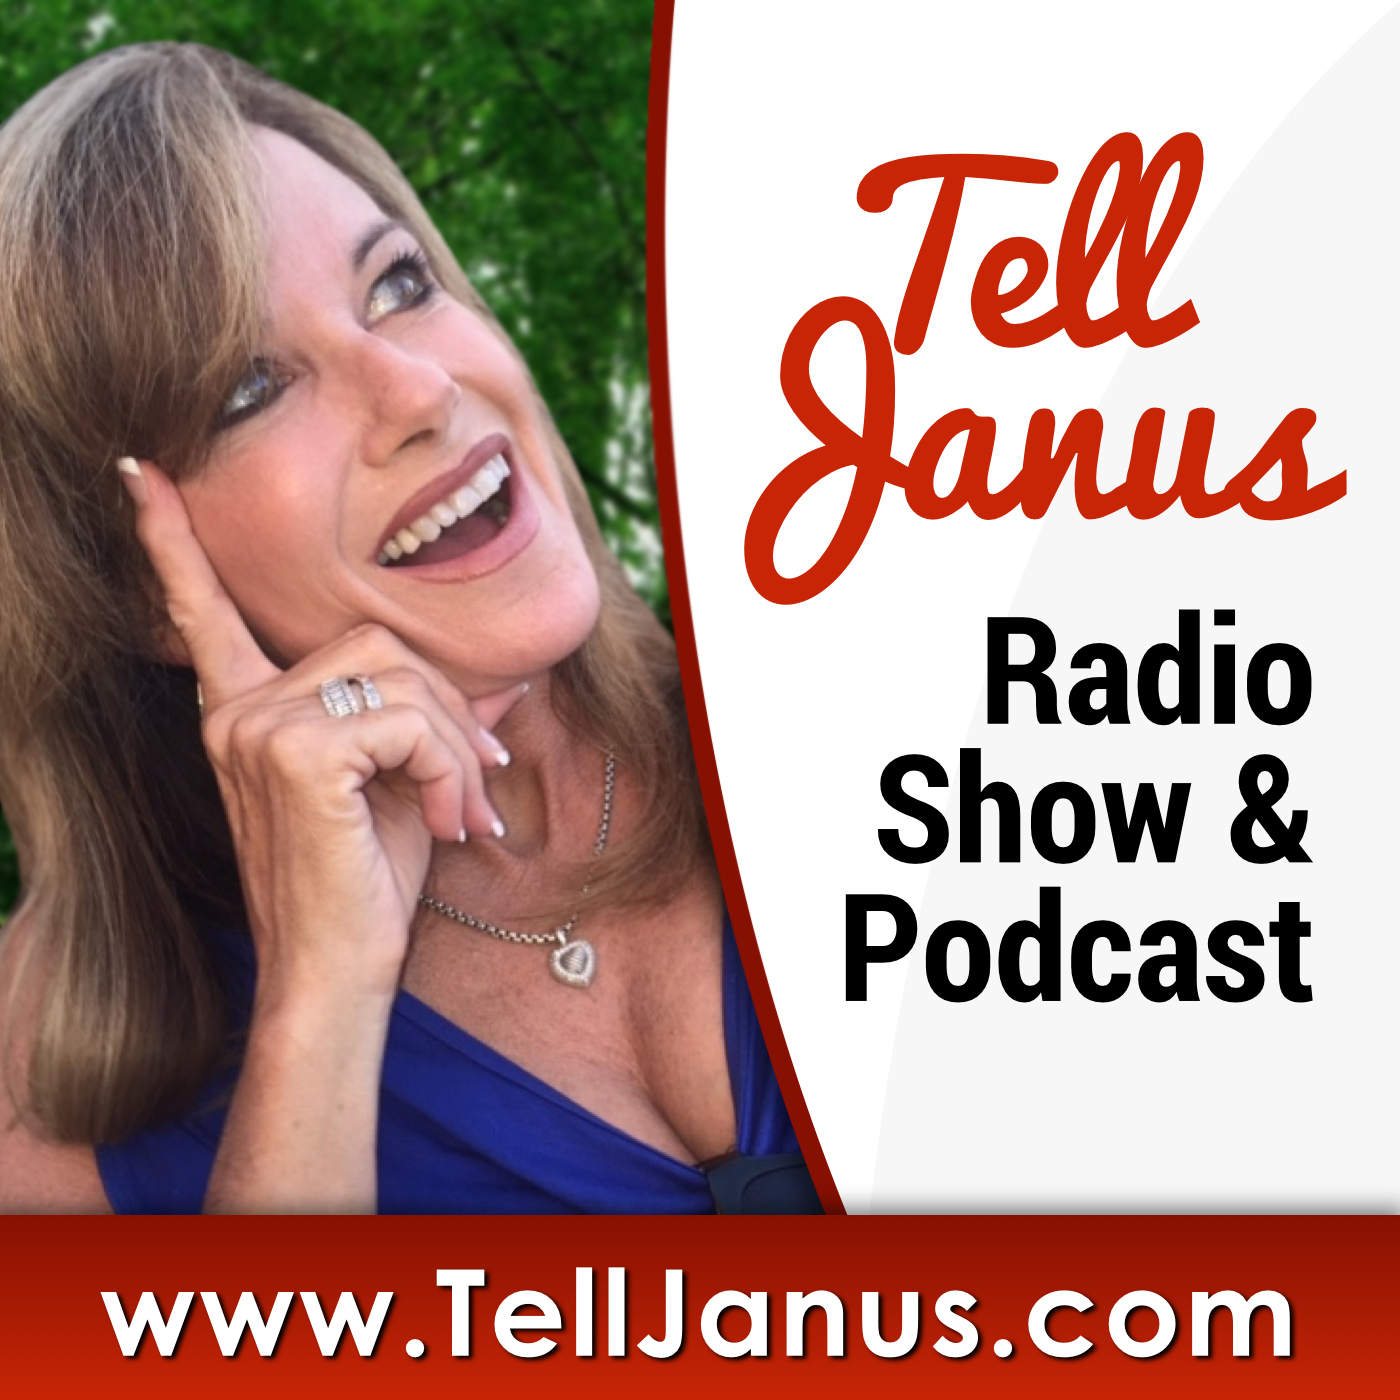 TellJanus Radio Show & Podcast